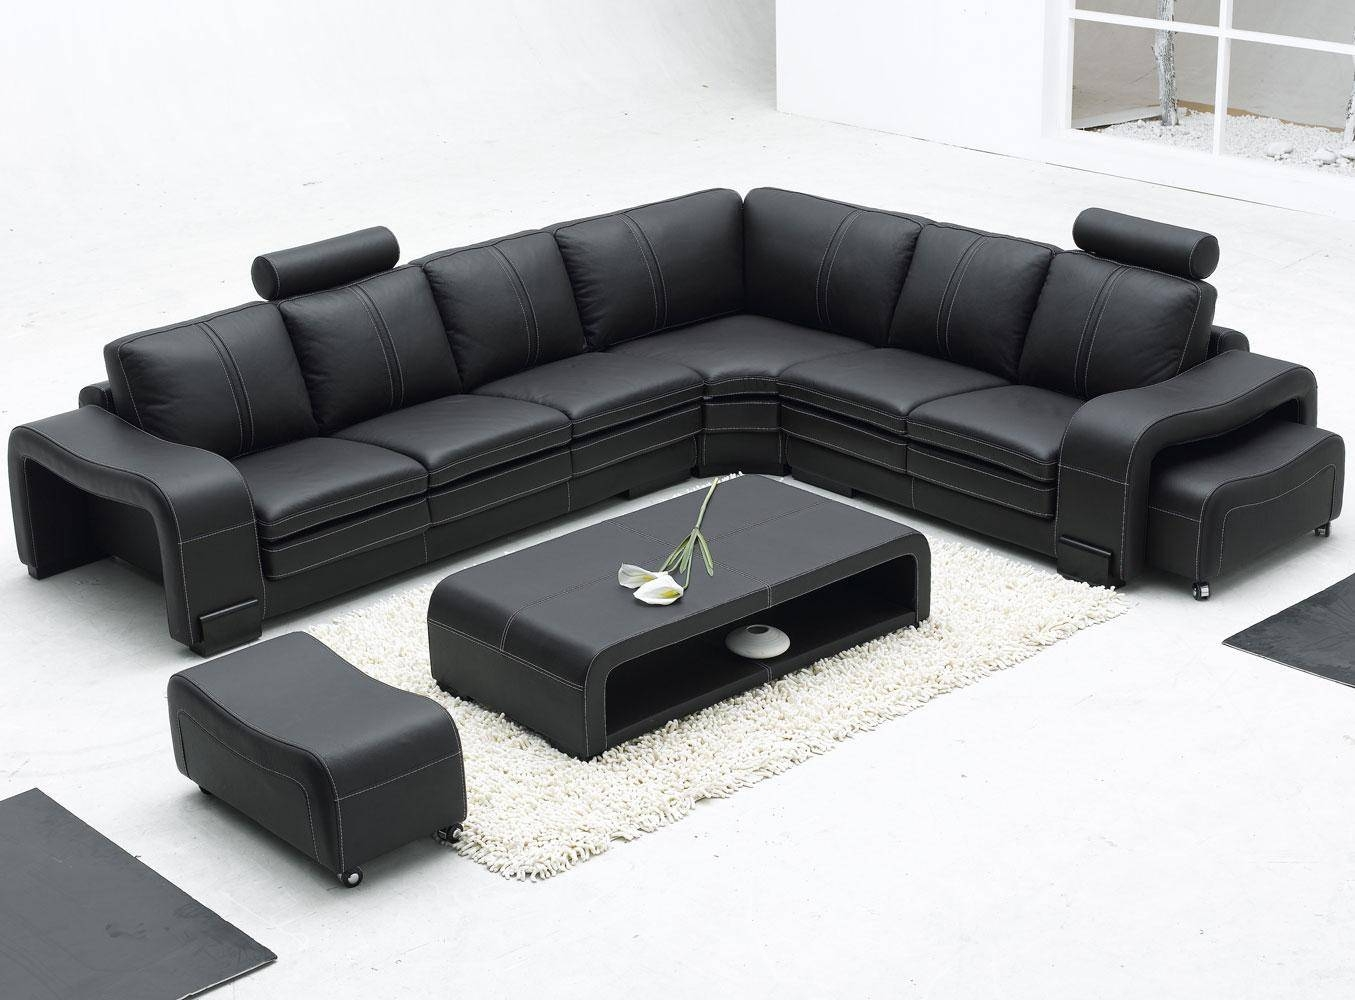 Cheap Black Leather Sectional Sofas - Cleanupflorida throughout Cheap Black Sofas (Image 4 of 30)